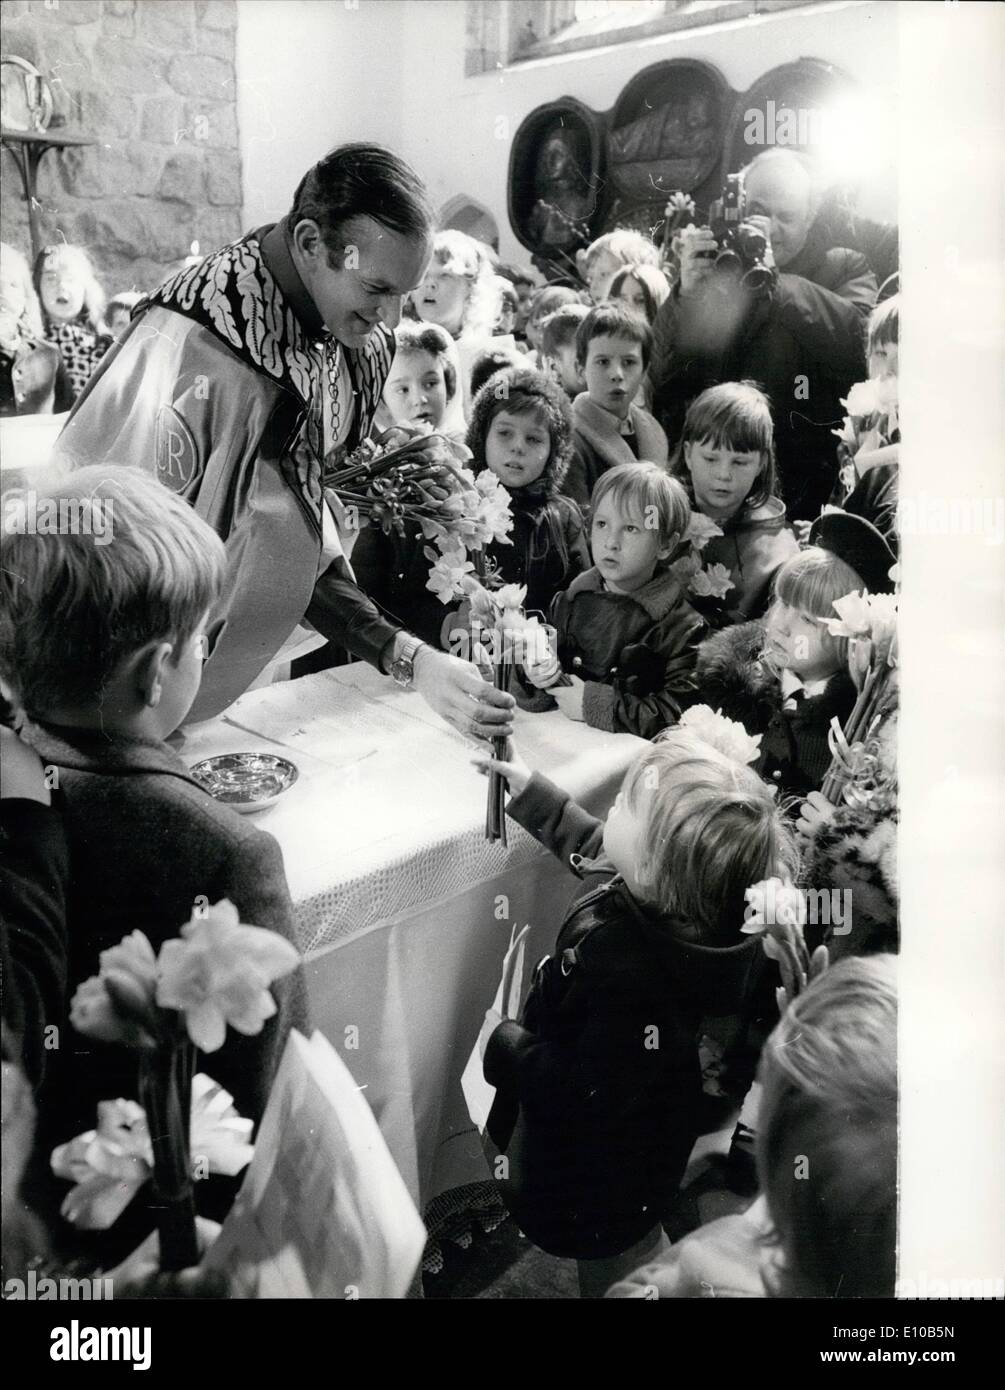 Mar. 03, 1972 - Mothering sunday service: The Rev. John Nicholls, the Queen's Chaplain to the Tower of London, handing members of his congregation tokens of Spring and Mothering Sunday which they took home after a service commemorating a thousand year old custom at the Chapel Royal of St. Peter ad Vincula yesterday. - Stock Image